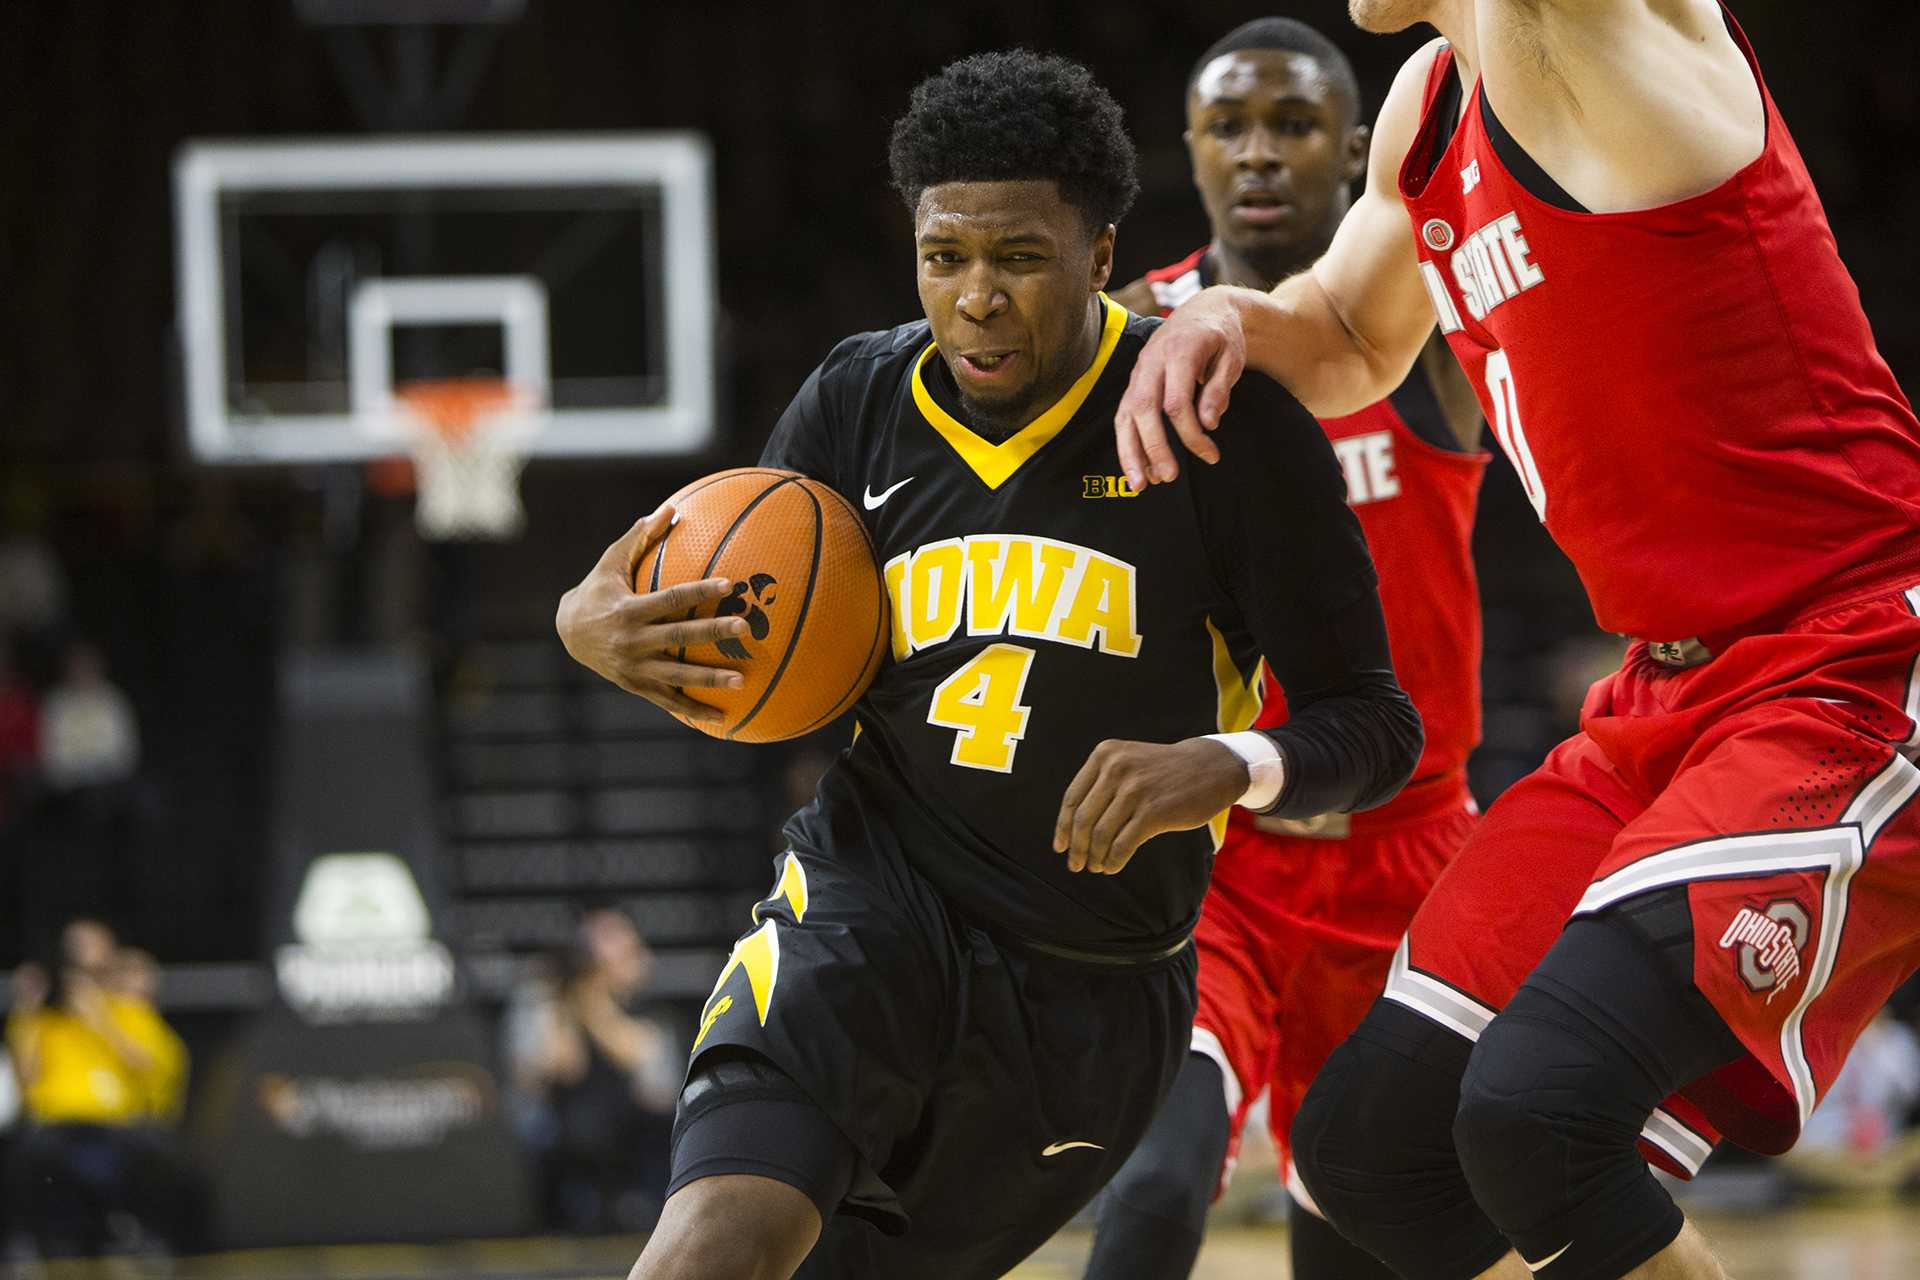 Isaiah Moss returns to Hawkeye basketball